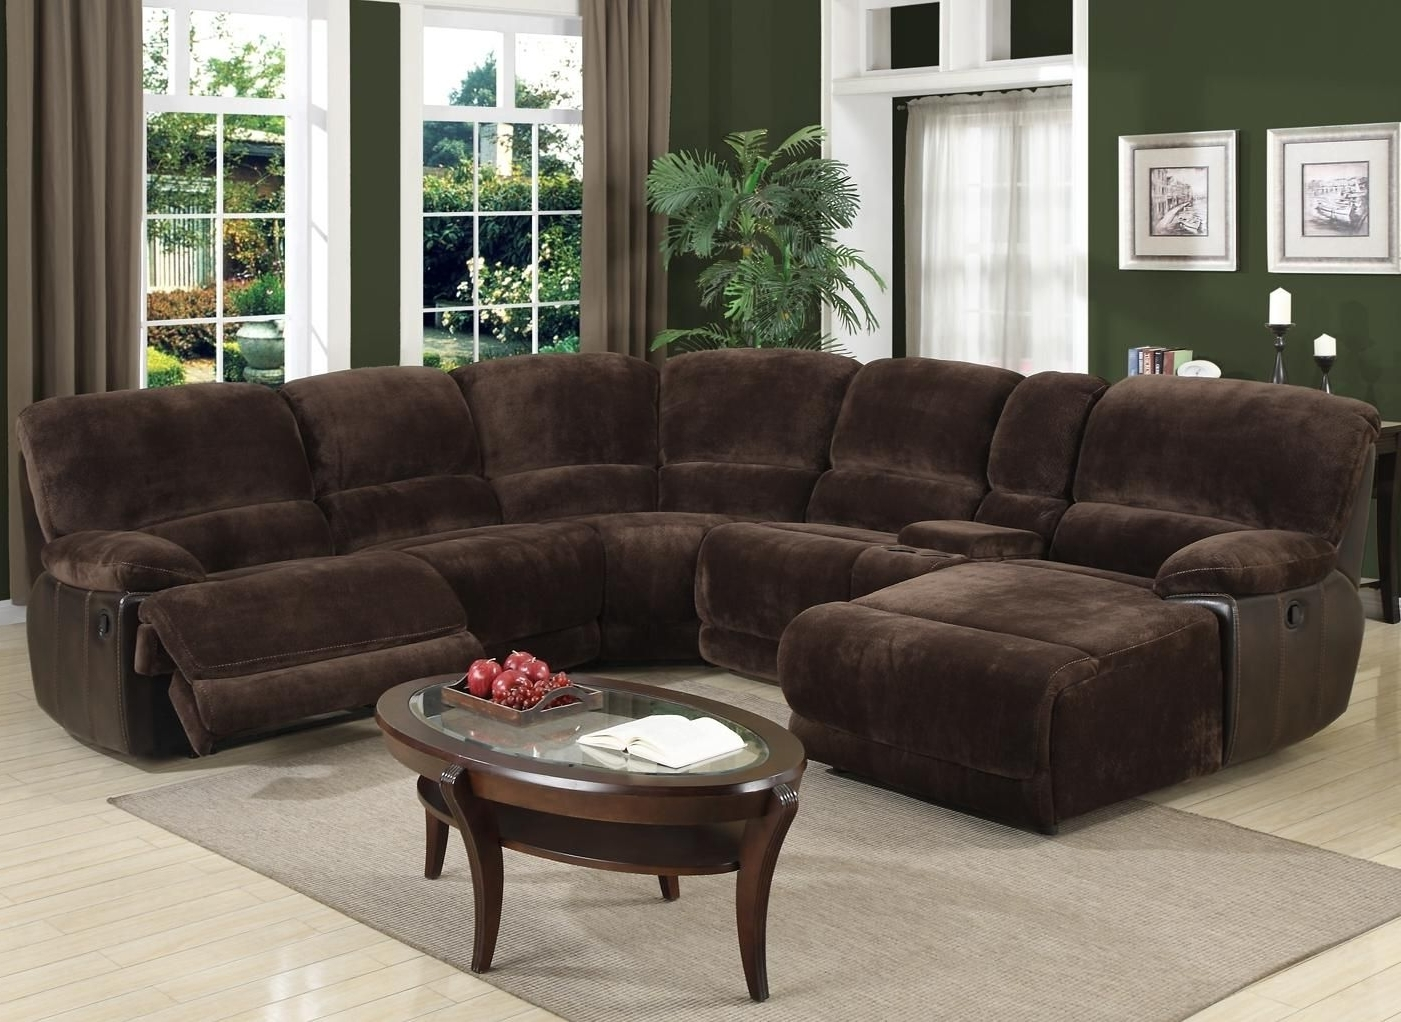 Motion Masters 3460 Casual Raf Chaise Reclining Sectional – Reeds With 2018 Sectional Couches With Recliner And Chaise (View 8 of 15)